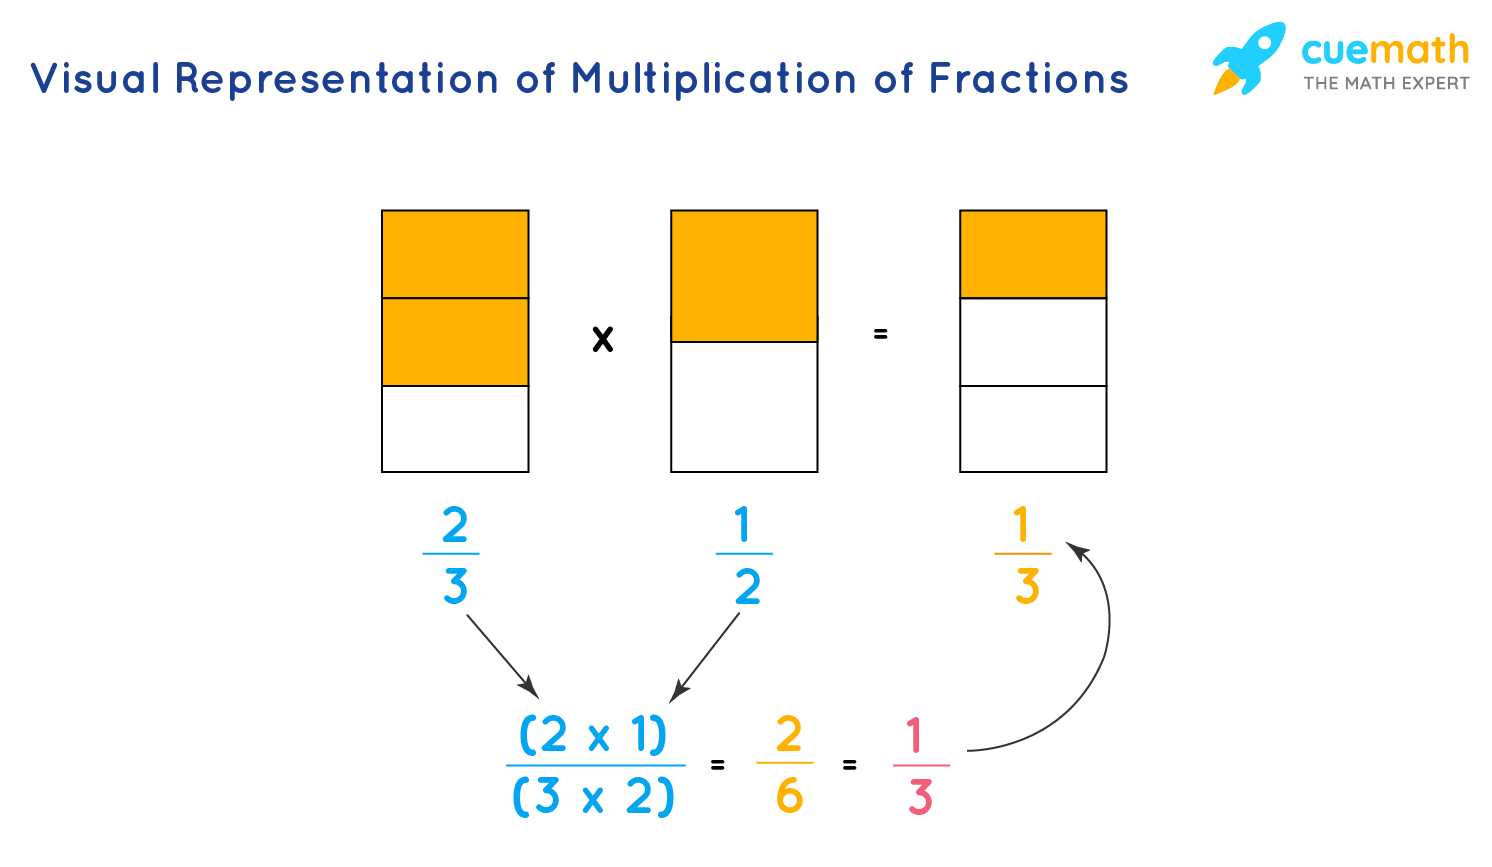 Visual Representation of Multiplication of Fractions